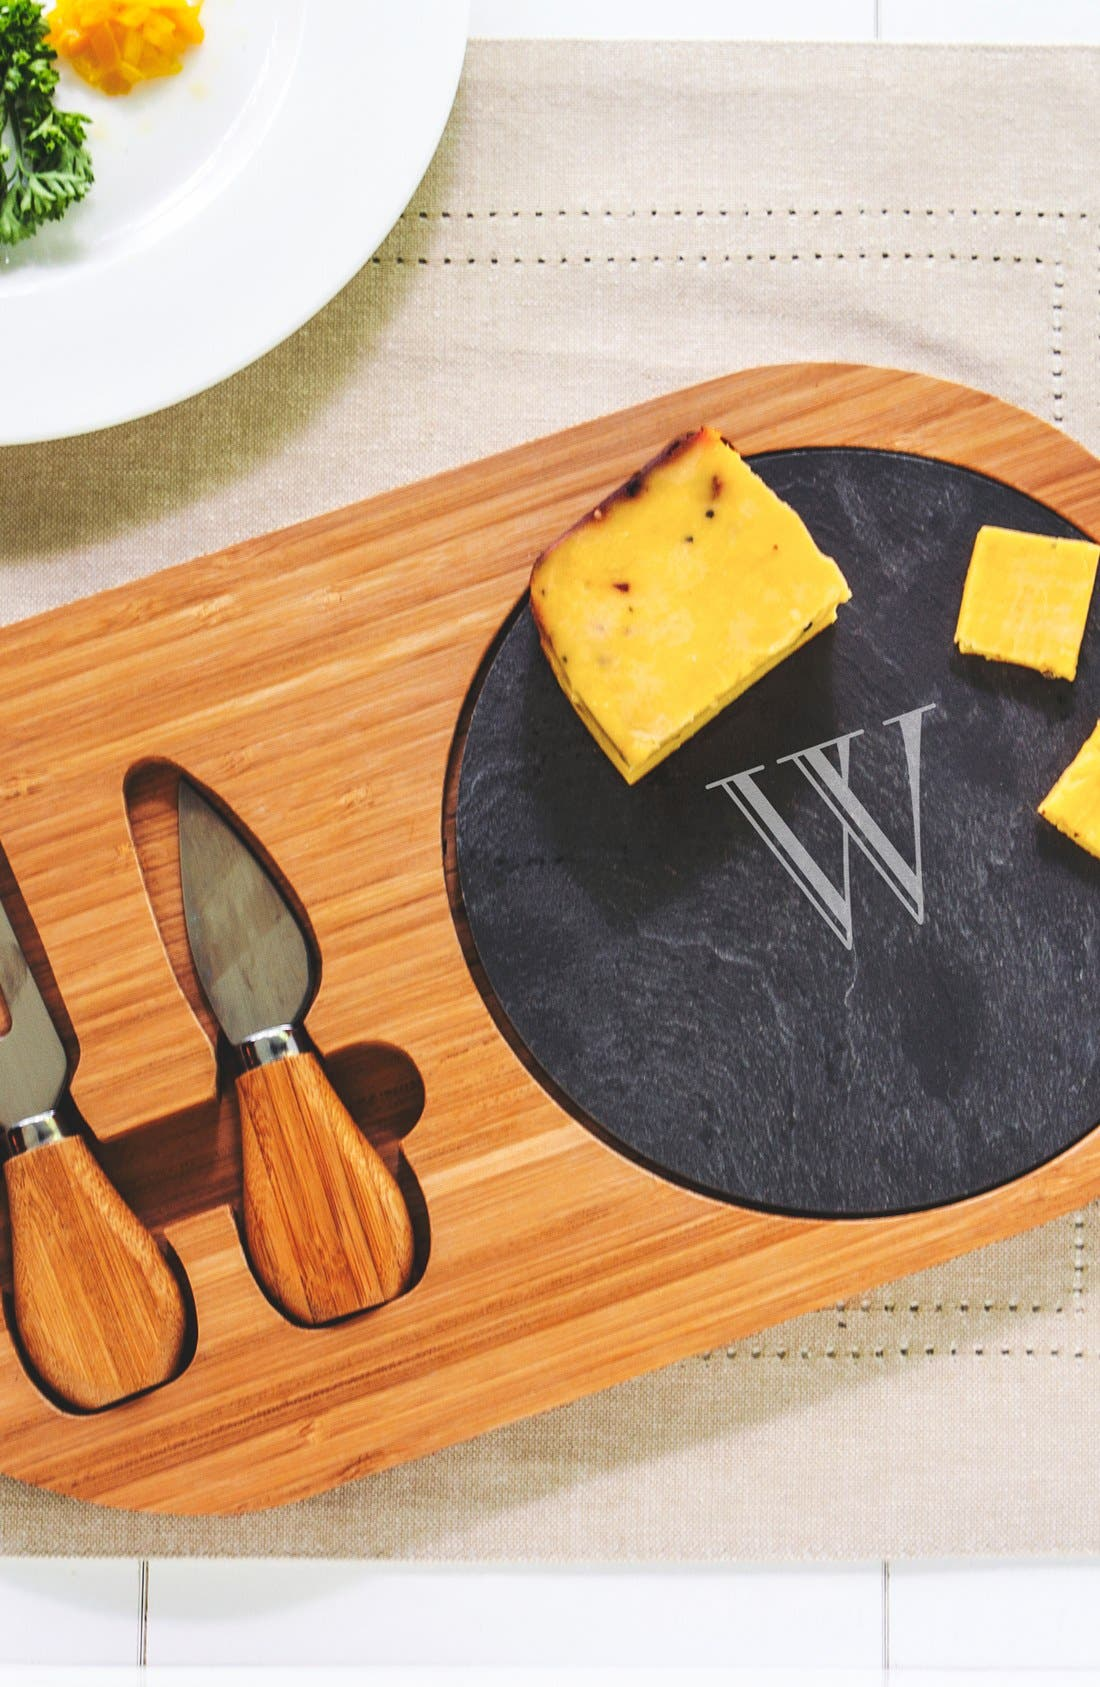 Alternate Image 1 Selected - Cathy's Concepts Monogram Cheese Board & Utensils